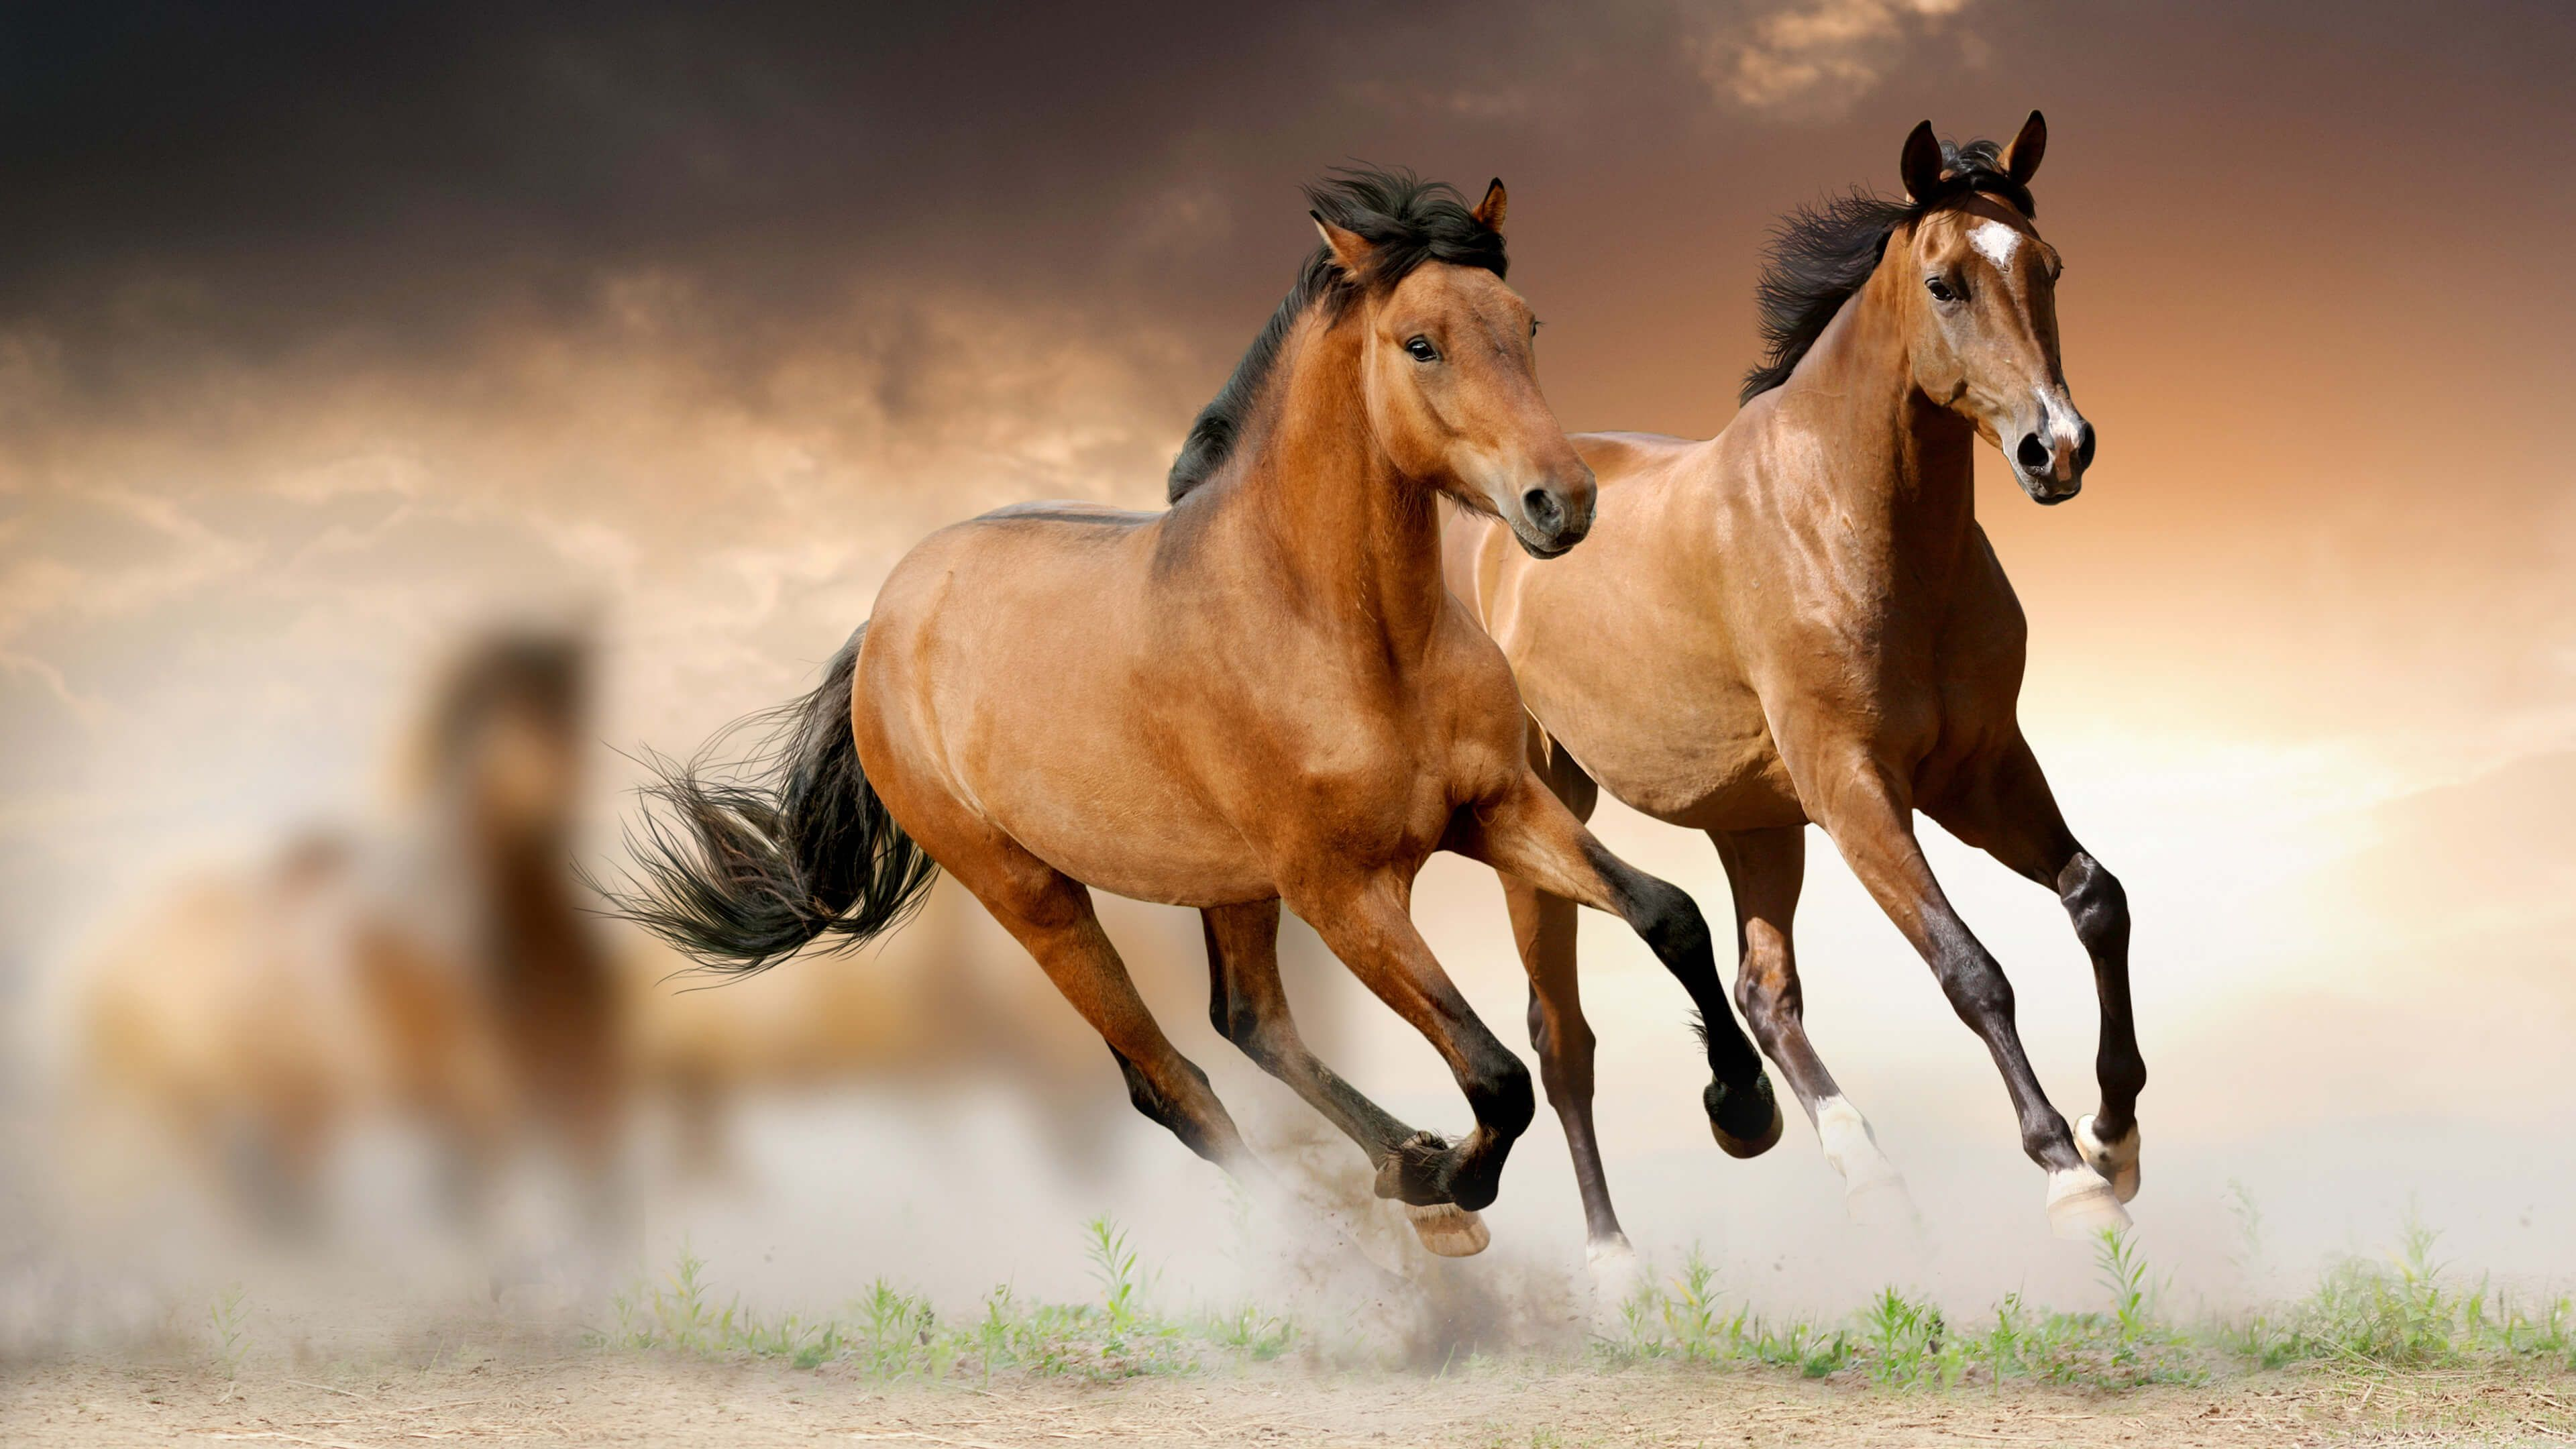 Great Wallpaper Horse Ultra Hd - 4c7f4d8c08779a3bbc37c5a4f47979e8  Pic_605811.jpg